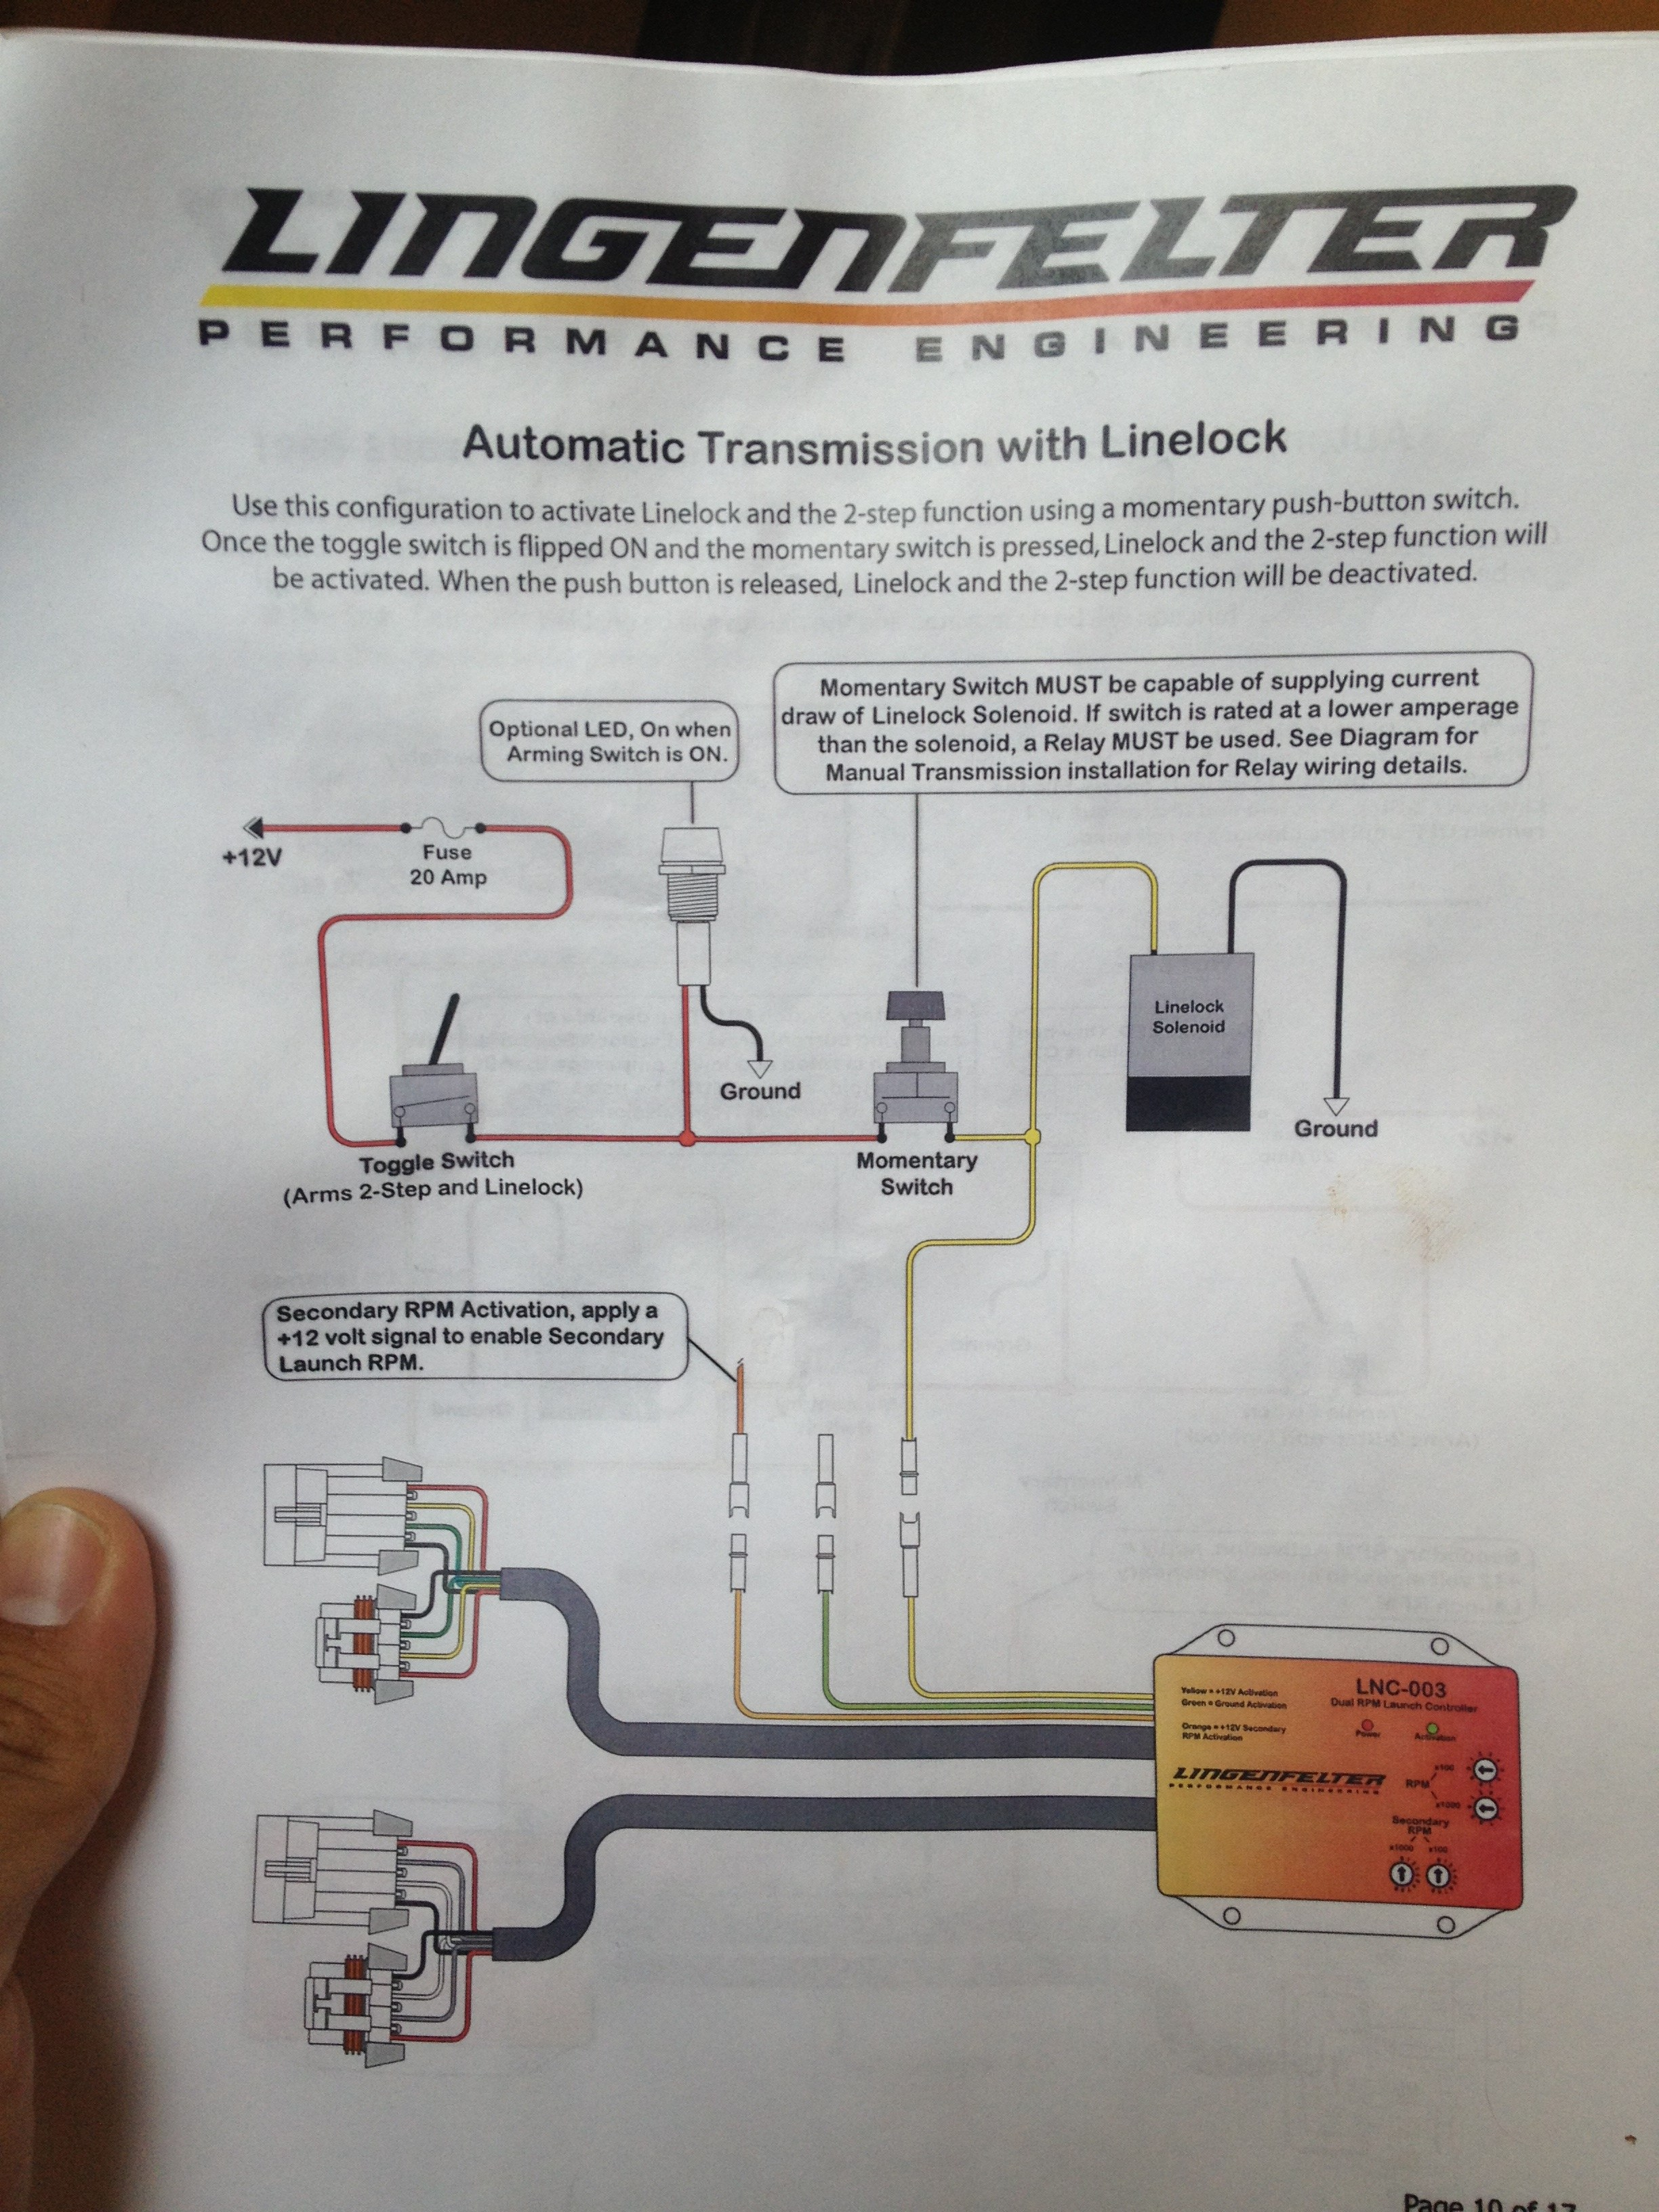 transbrake wiring diagram pop up camper lpe 2 step for 4l60e with line lock and no trans